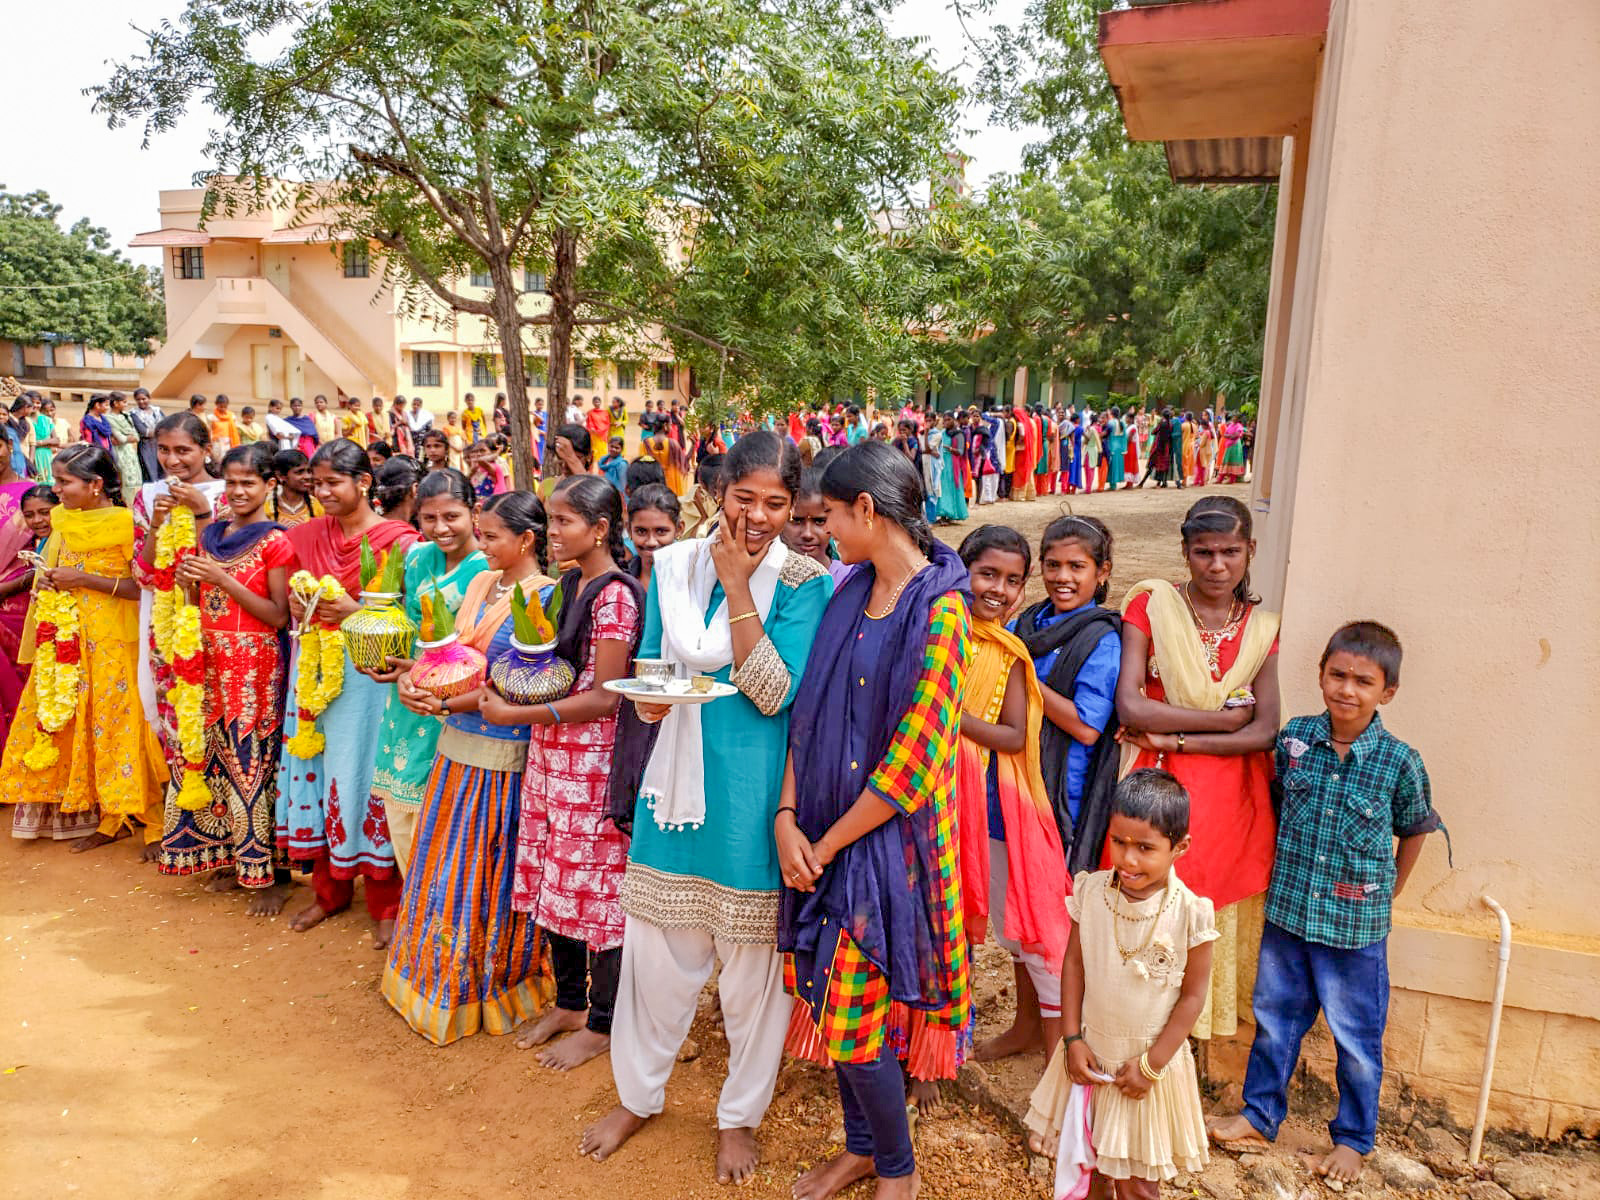 The group visited an orphange while in India. Pictured are the kids that live in the orphanage as they waited for the visitors from Minnesota to arrive.